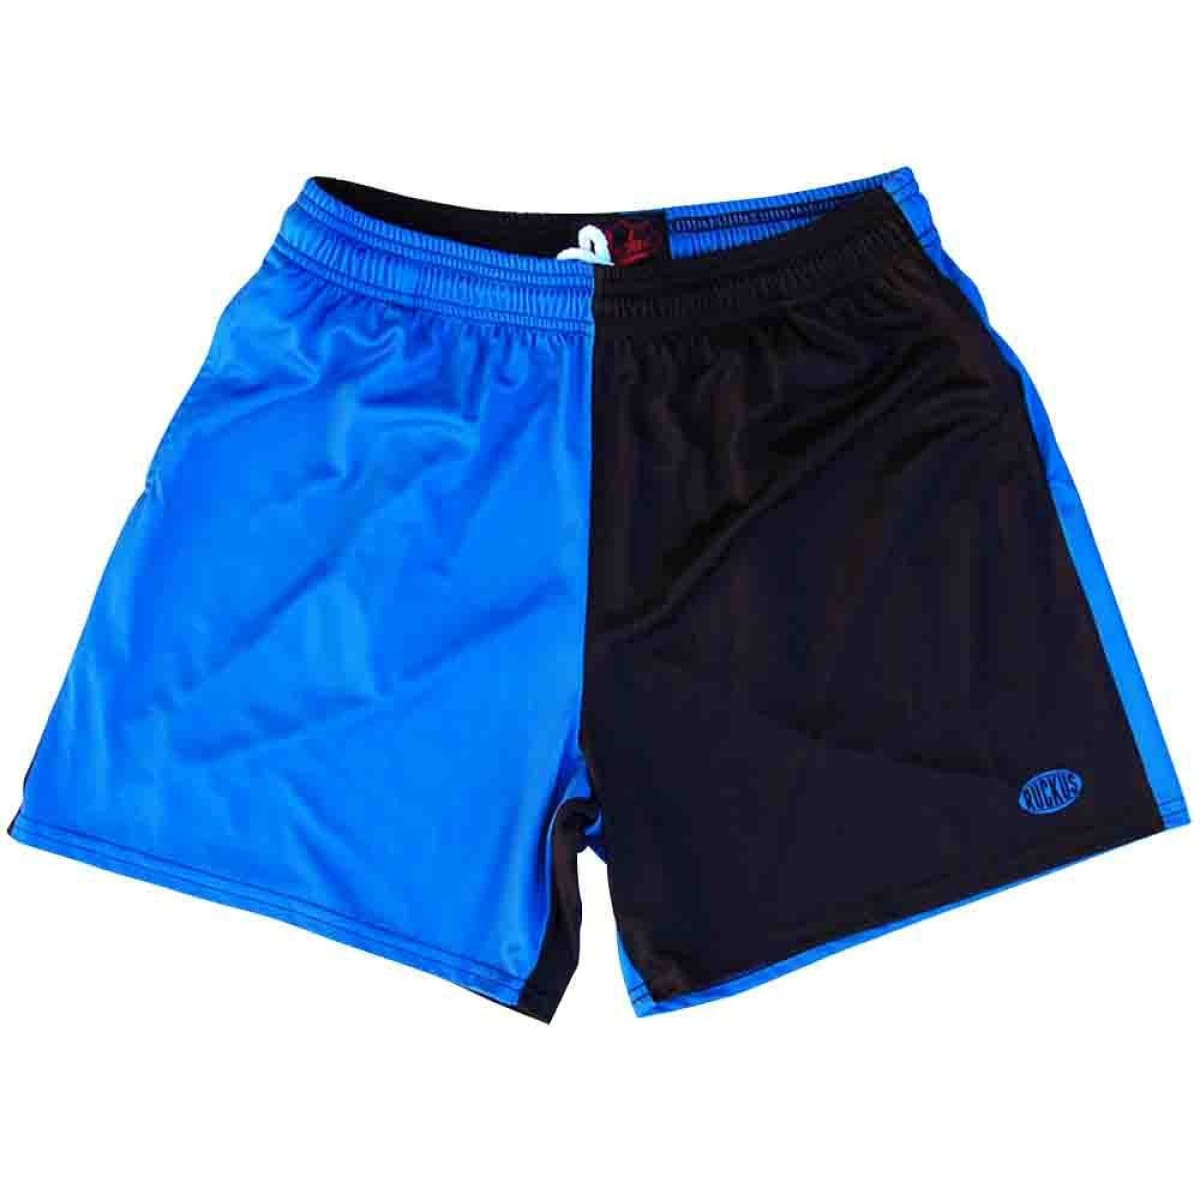 Royal and Black Rugby Shorts - Royal and Black / Adult Small - Rugby Cut Training Shorts